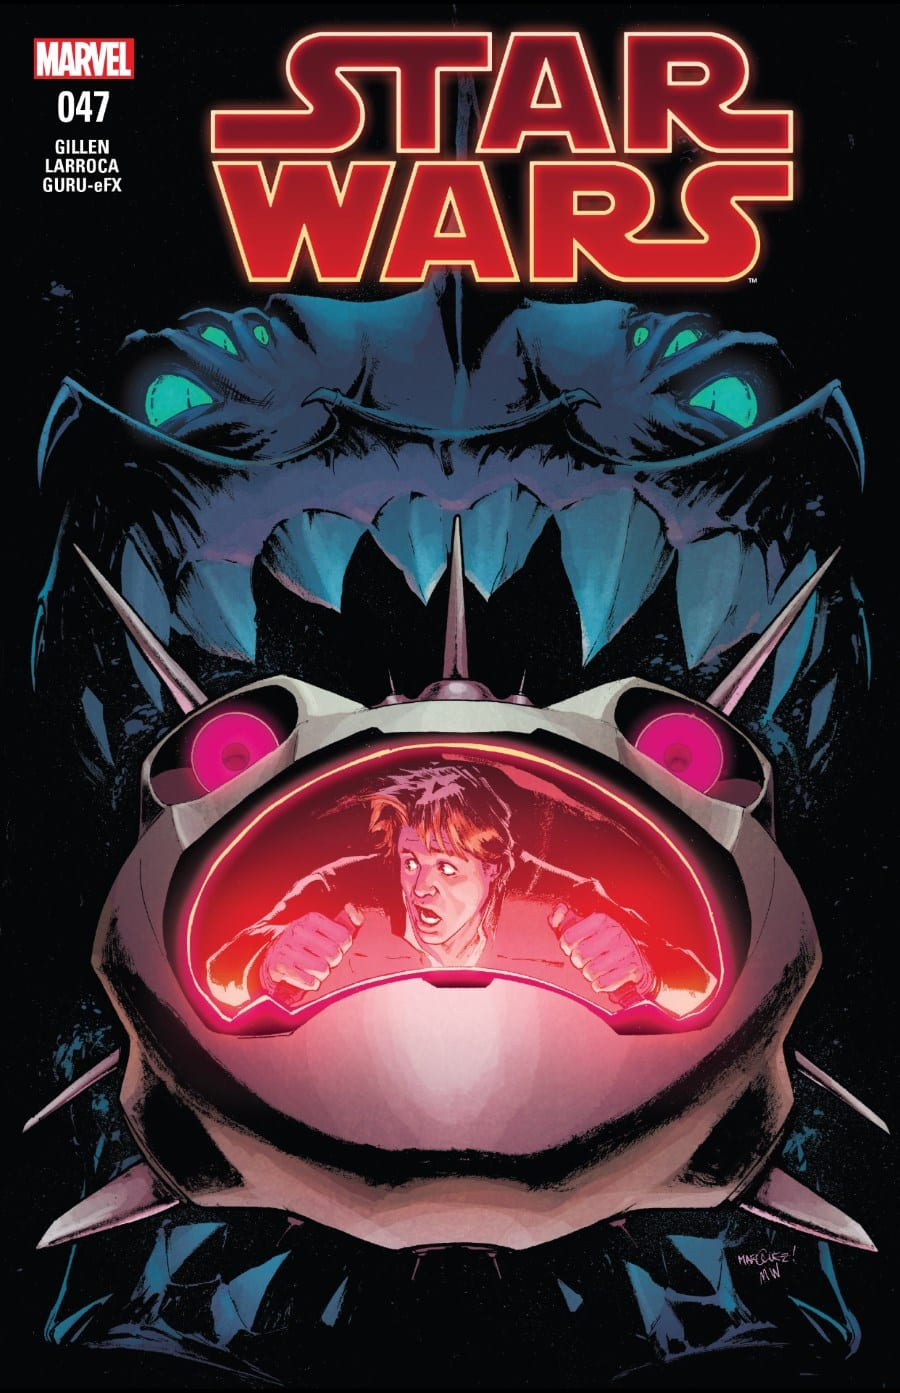 Star Wars #47 Cover